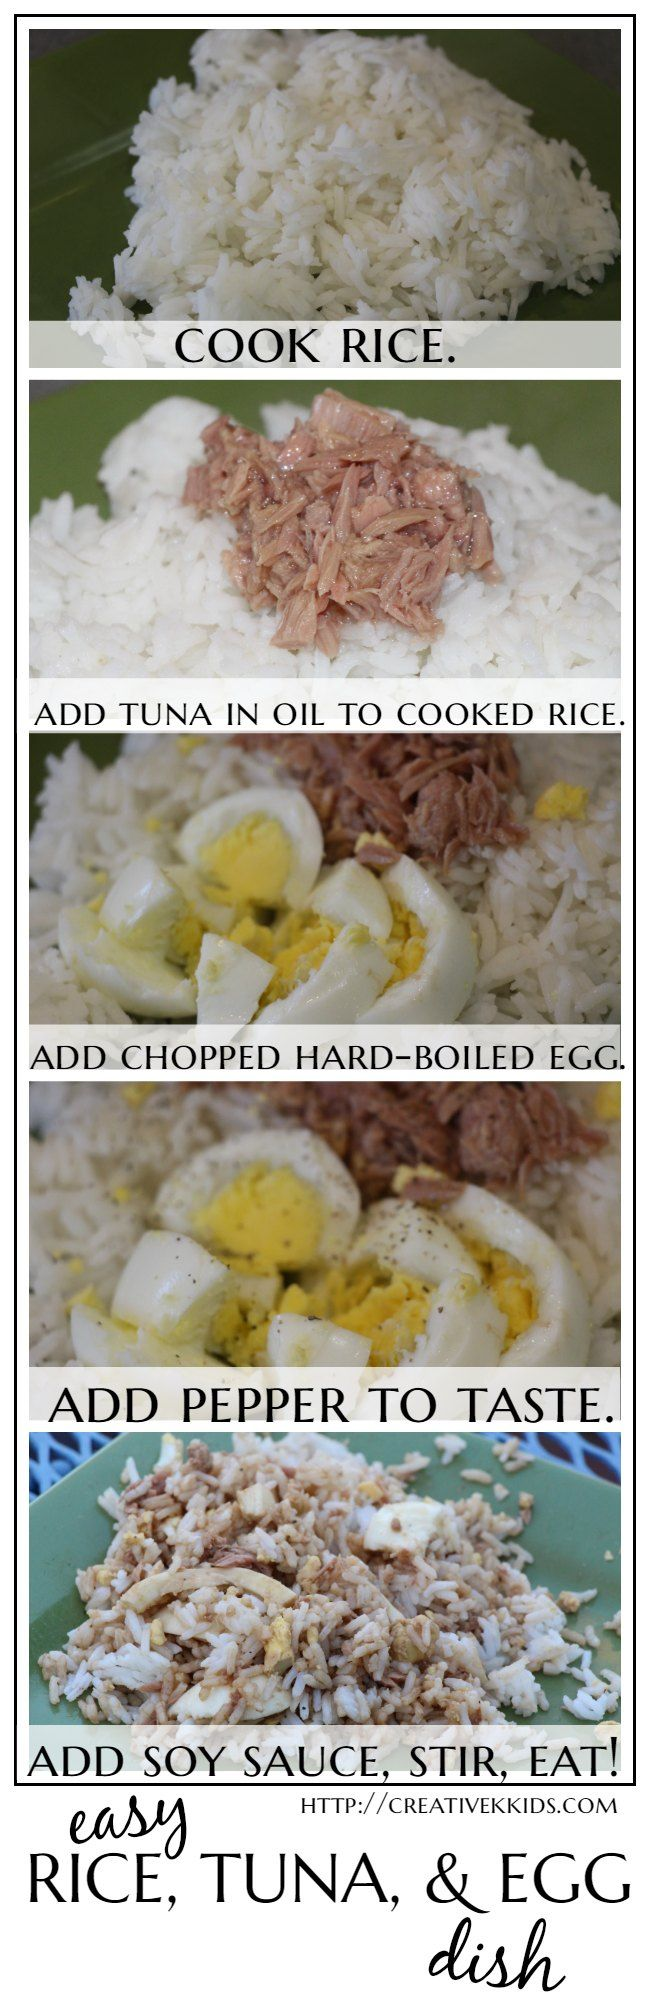 An easy quick meal of 4 ingredients: rice, tuna in oil, hard-boiled eggs, and soy sauce. My kids love this meal!